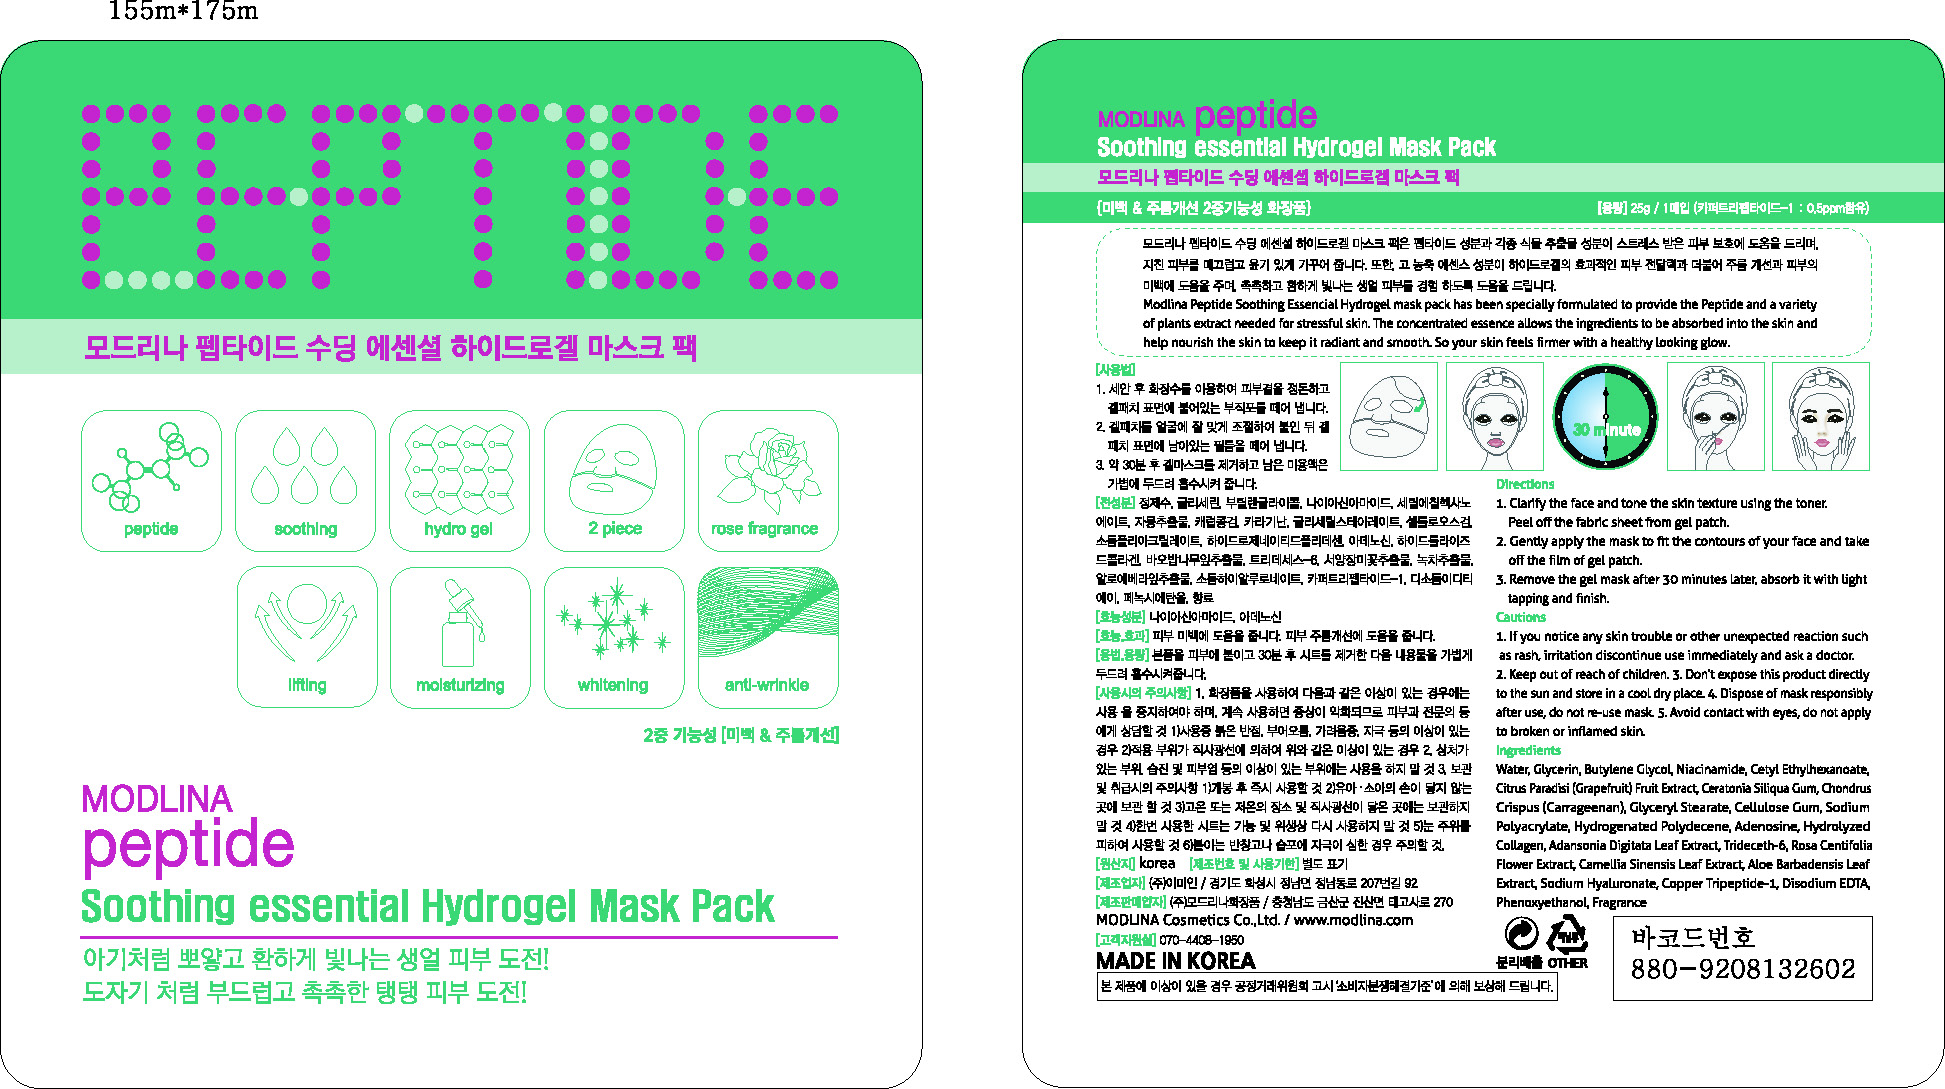 Modlina Peptide Soothing Essential Hydrogel Mask Pack (Glycerin) Liquid [Modlina Cosmetics Co., Ltd]